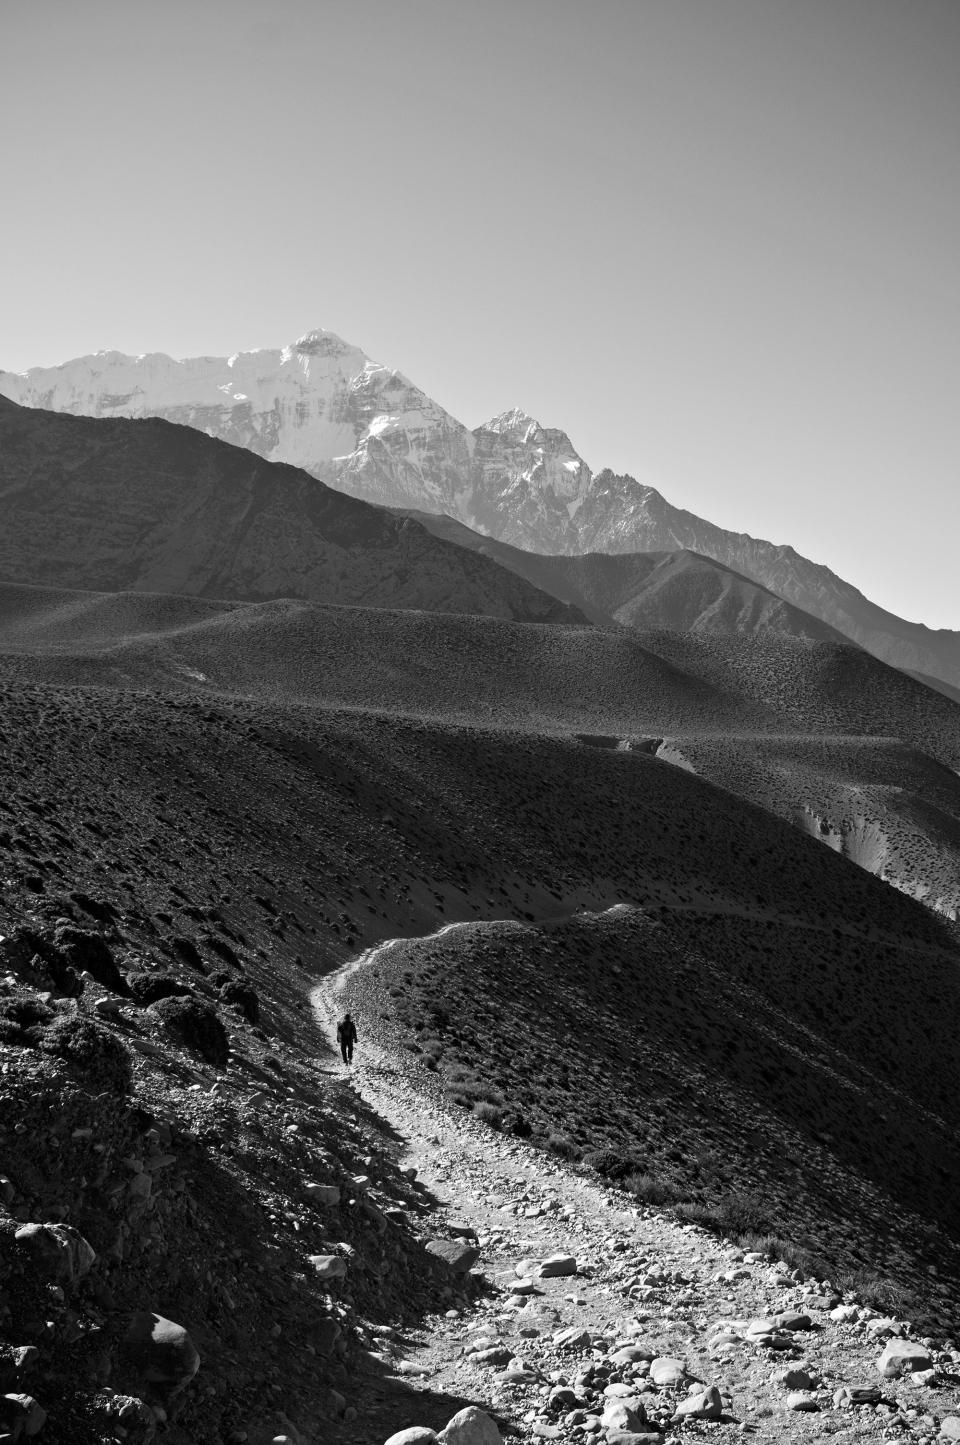 nepal black and white walking stones gravel mountains hills dirt